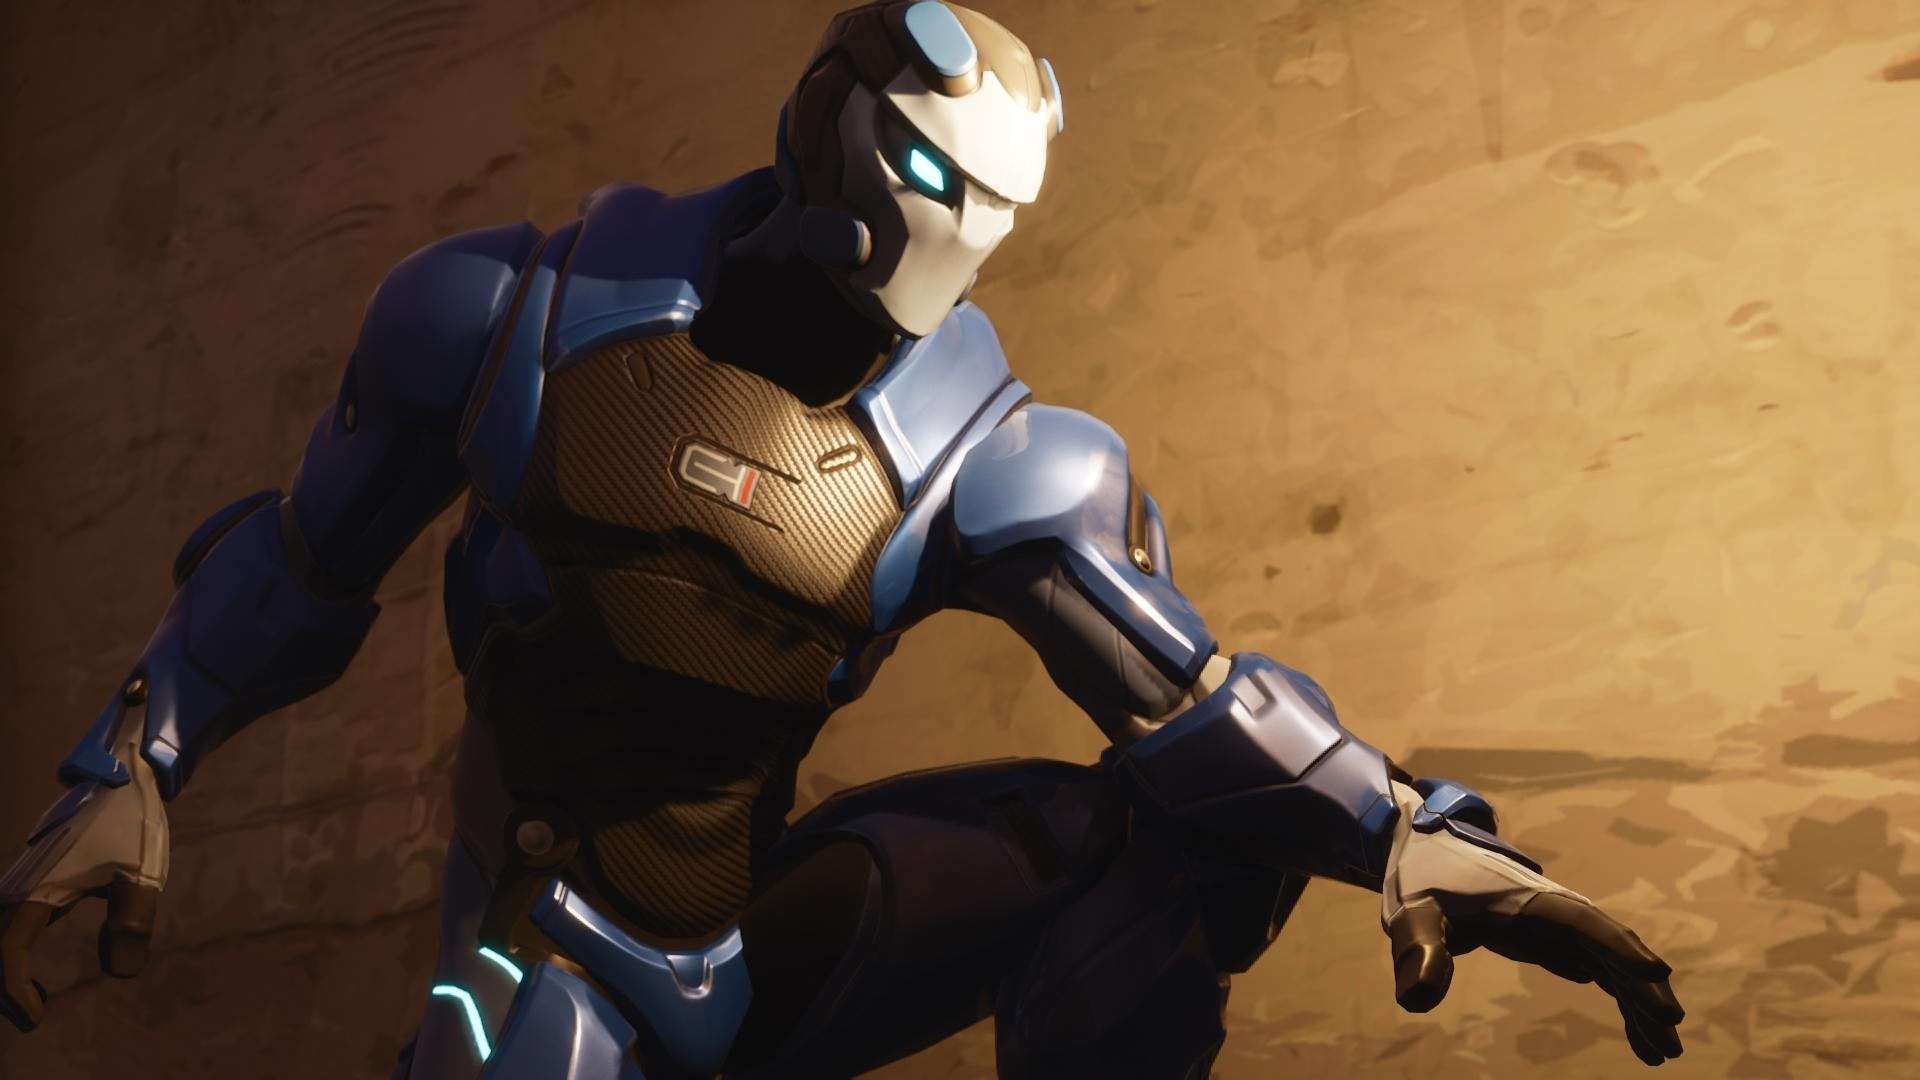 32 Best Free Fortnite Cool Carbide Wallpapers Wallpaperaccess